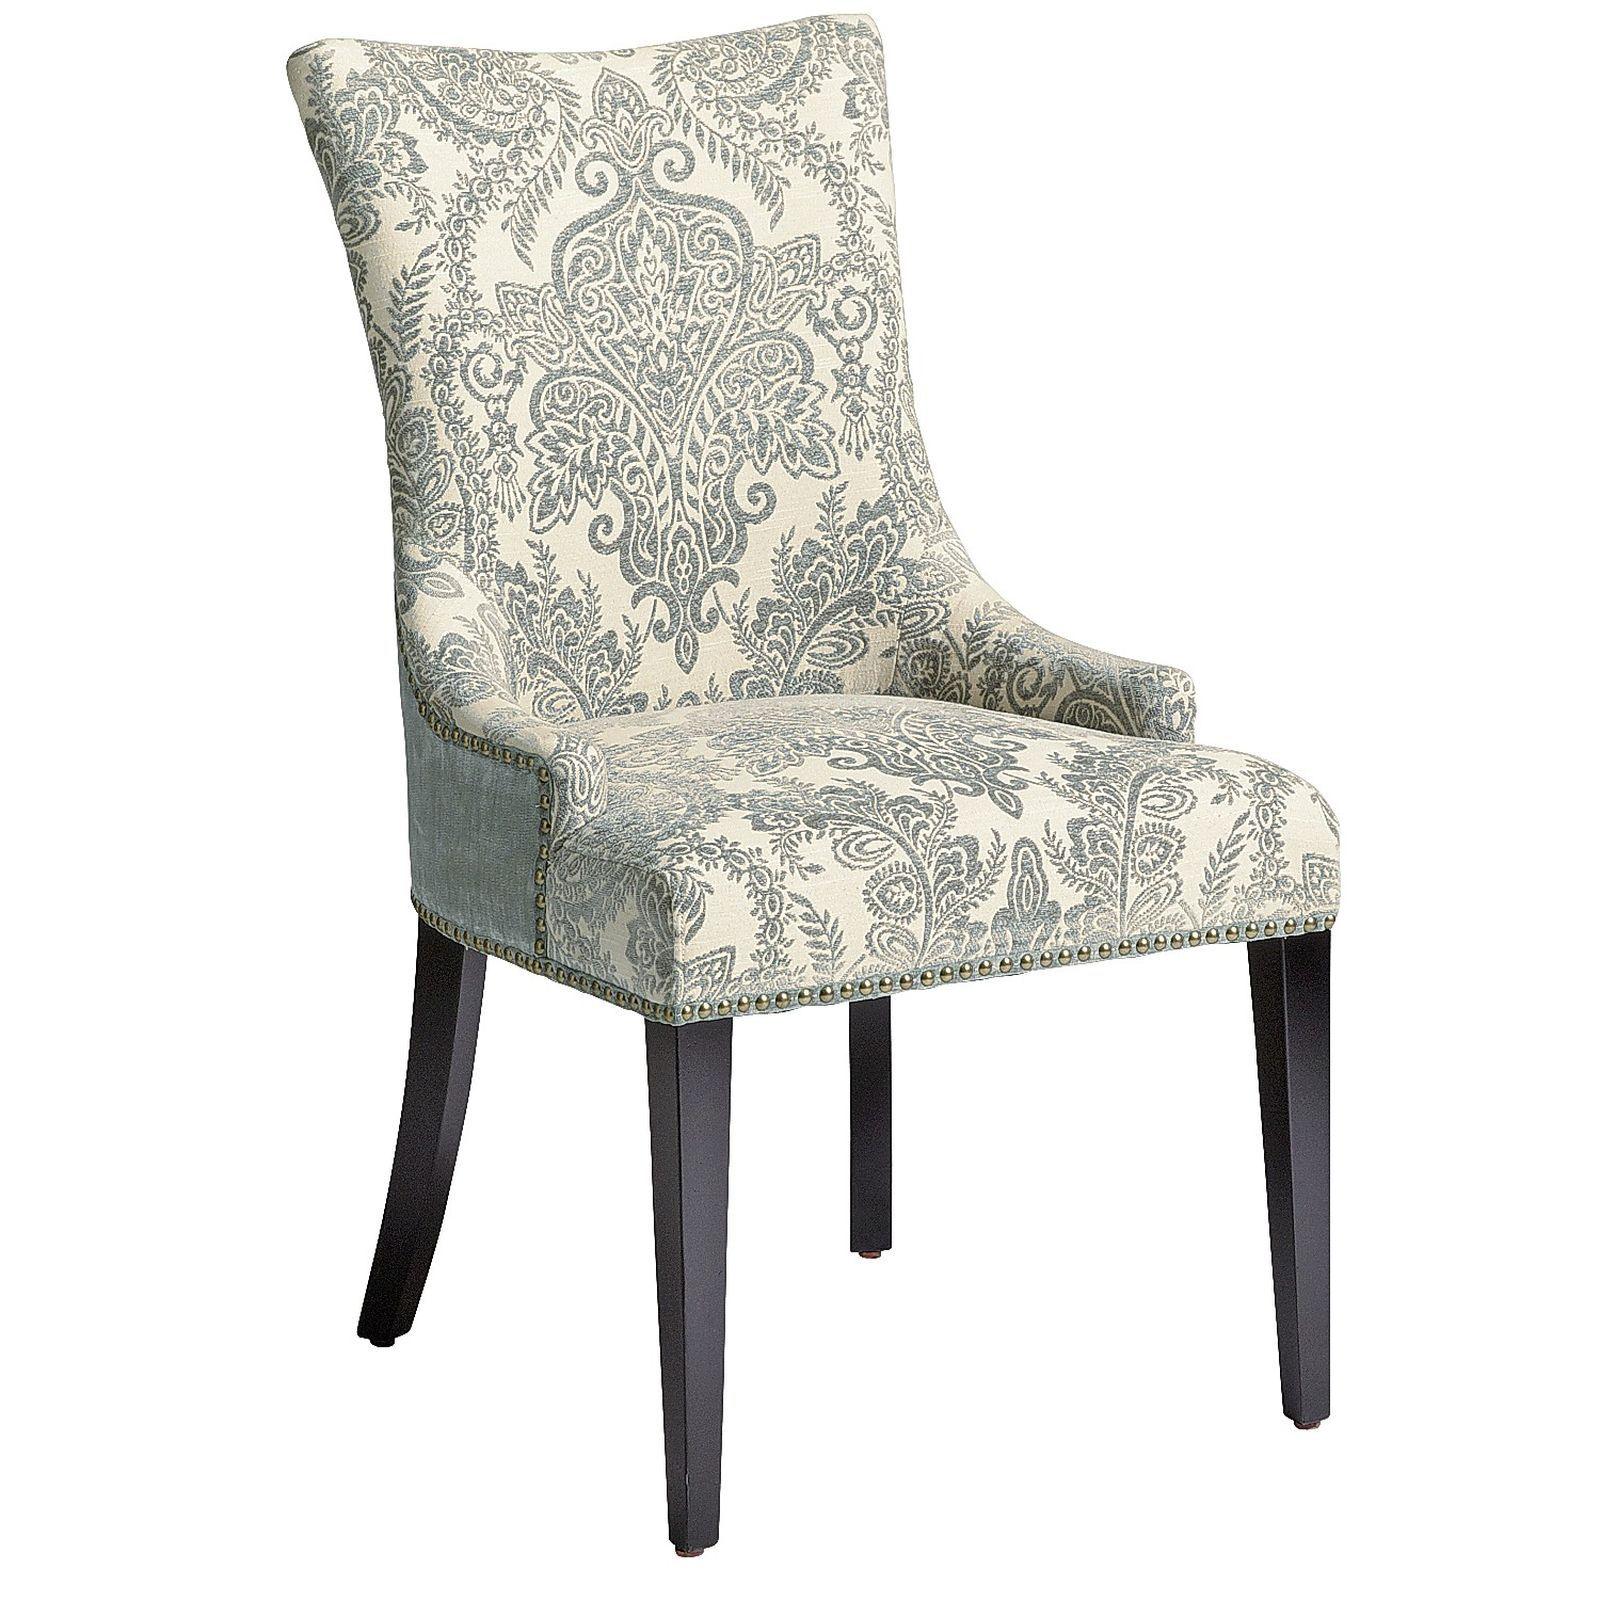 pier one blue accent chairs stretch chair slipcovers t cushion 1 imports adelle smoke dining nailhead